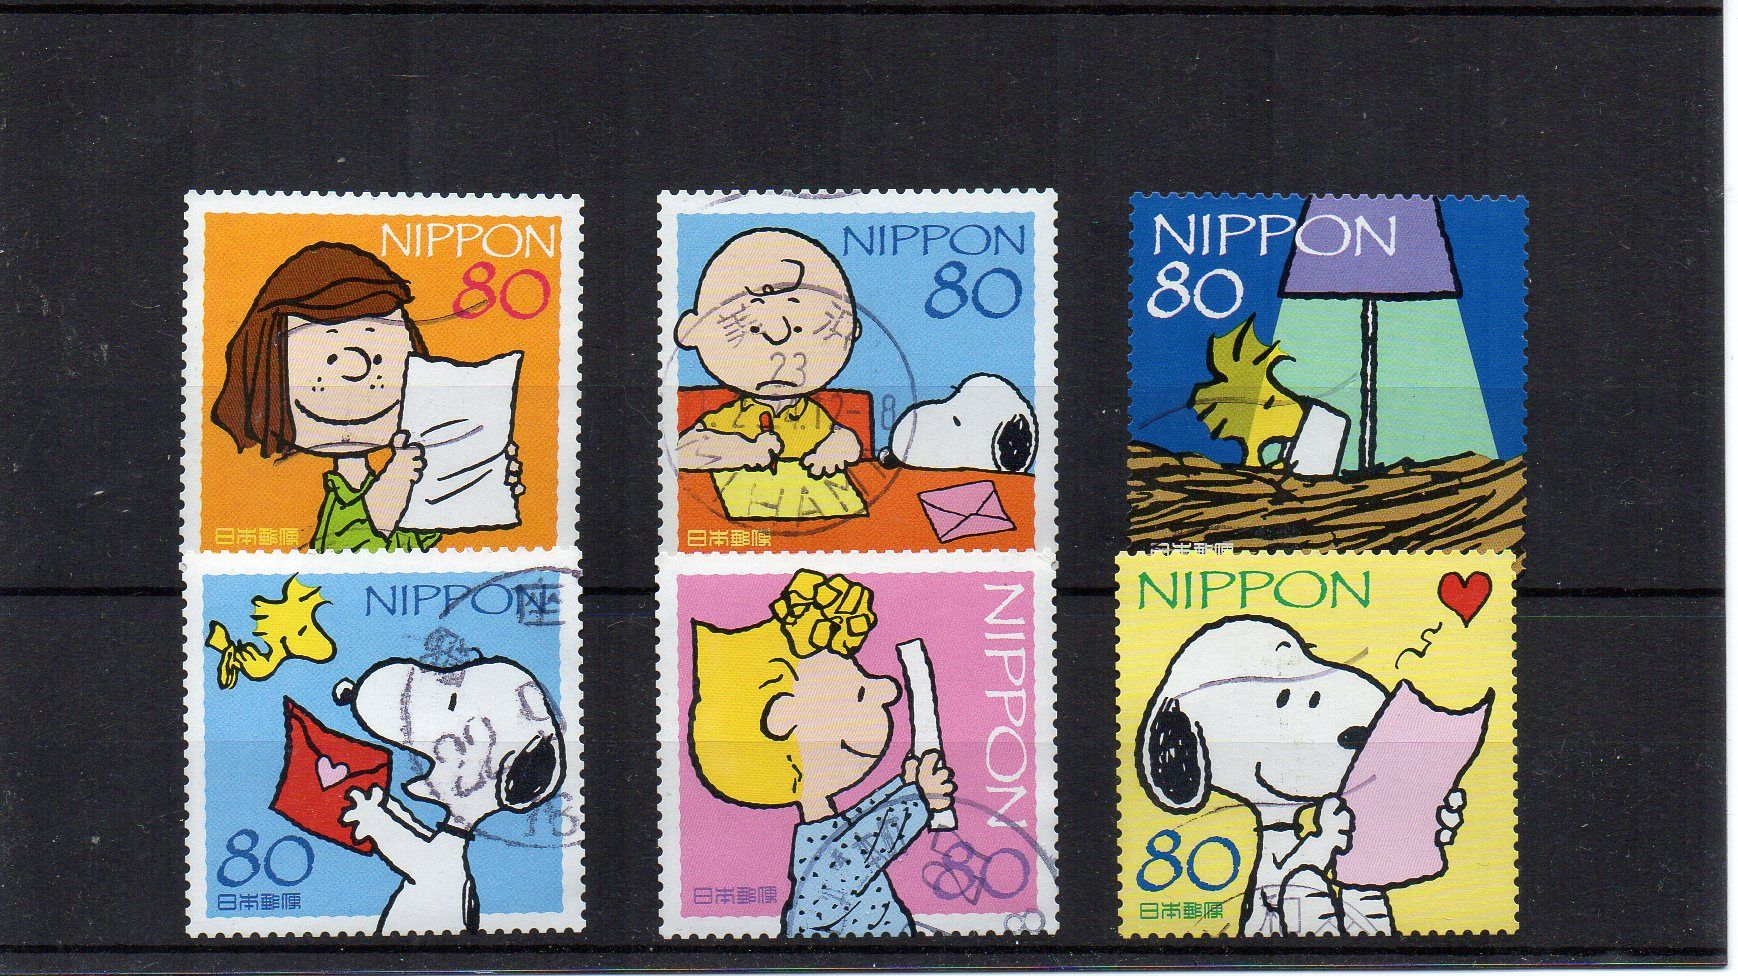 6 Snoopy Cute Japanese Stamps Japan Postage Asian